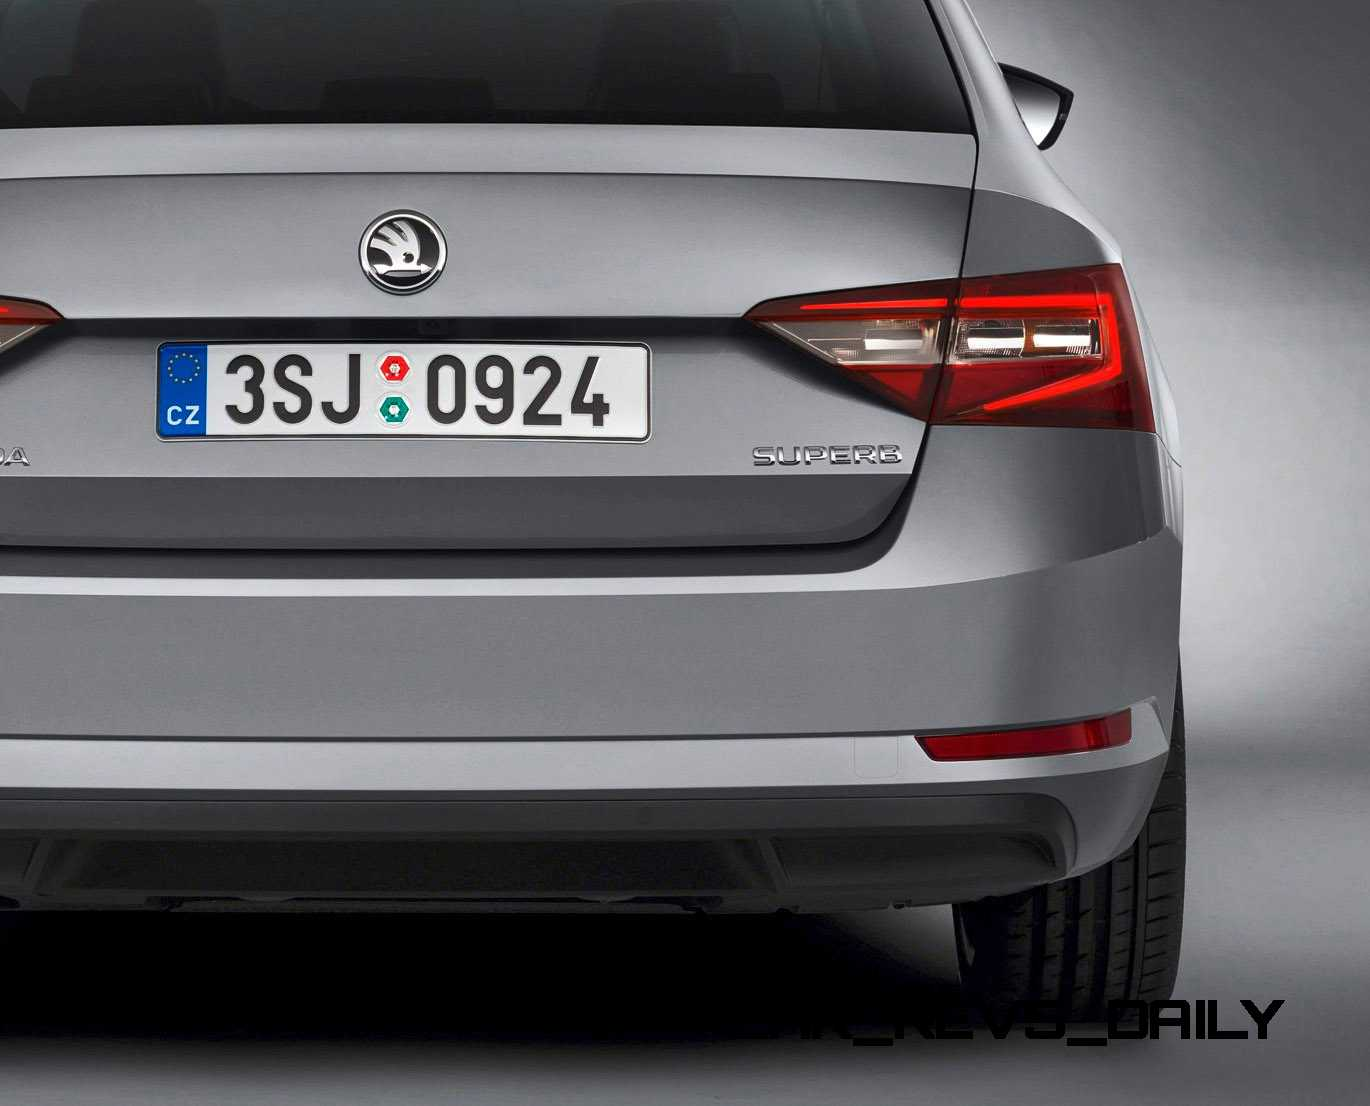 skoda_superb_heck_p3_fin copy